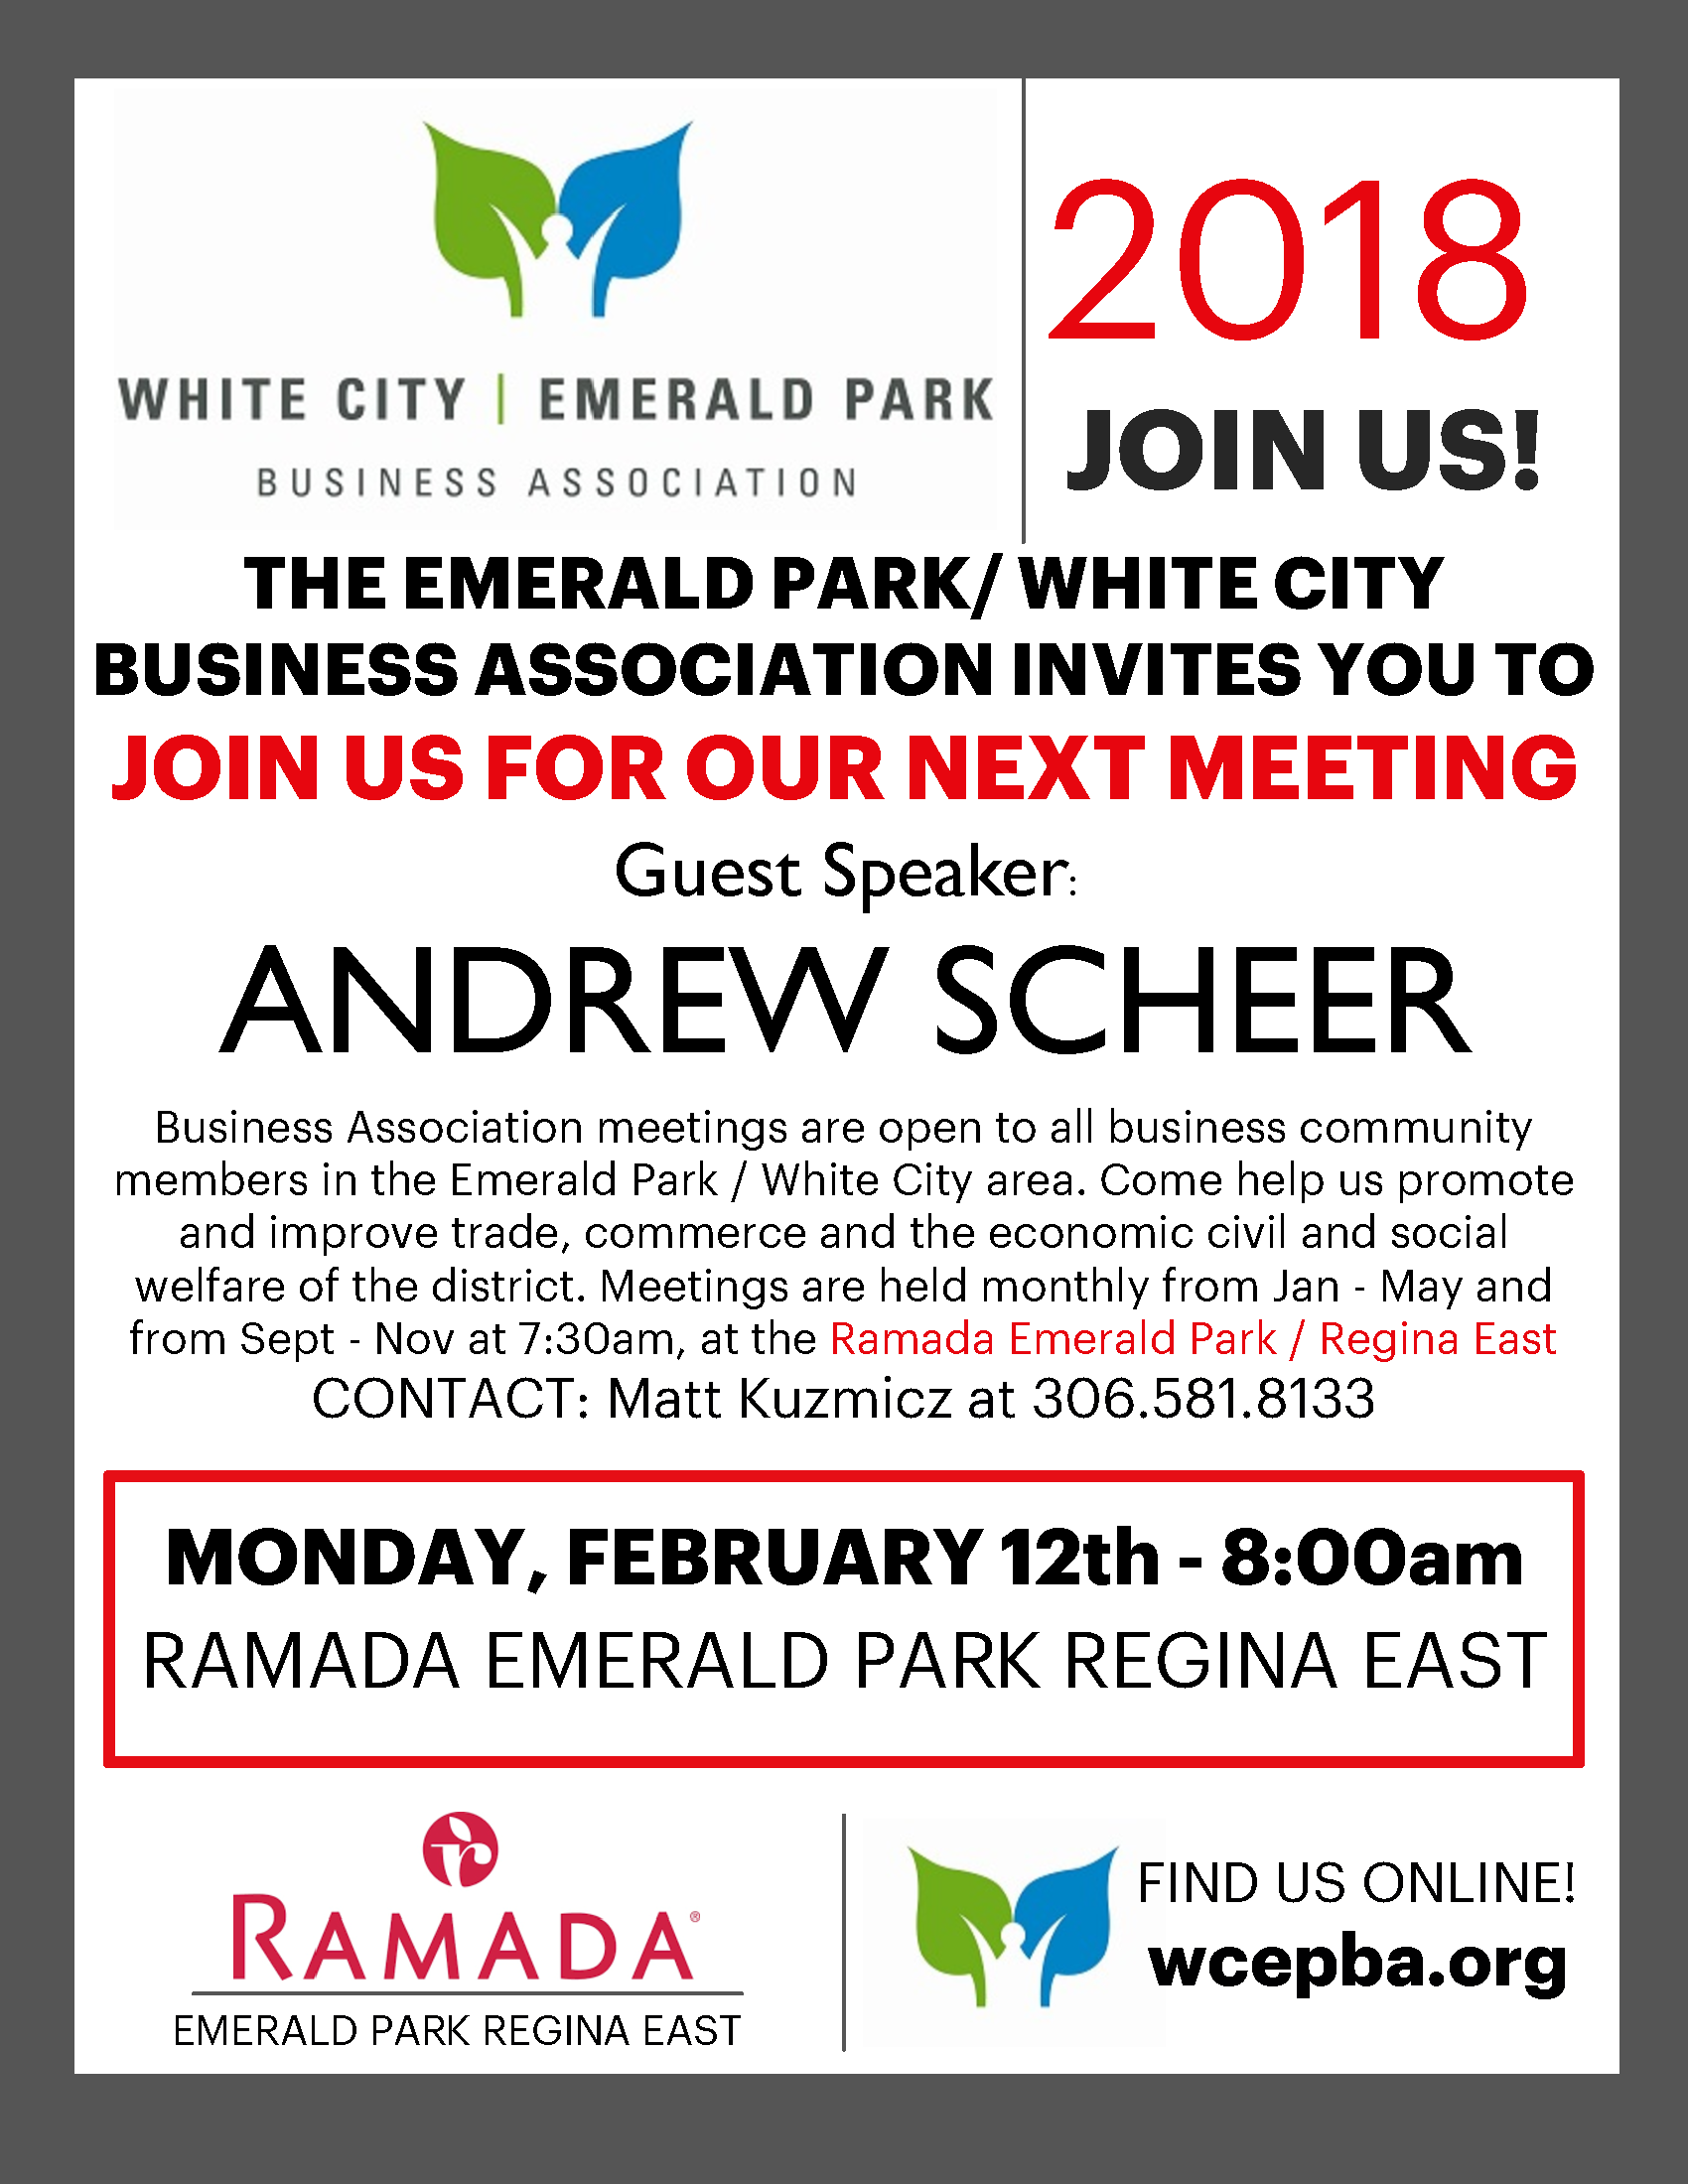 The Emerald Park/White City Business Association Meeting with Guest Speaker: Andrew Scheer